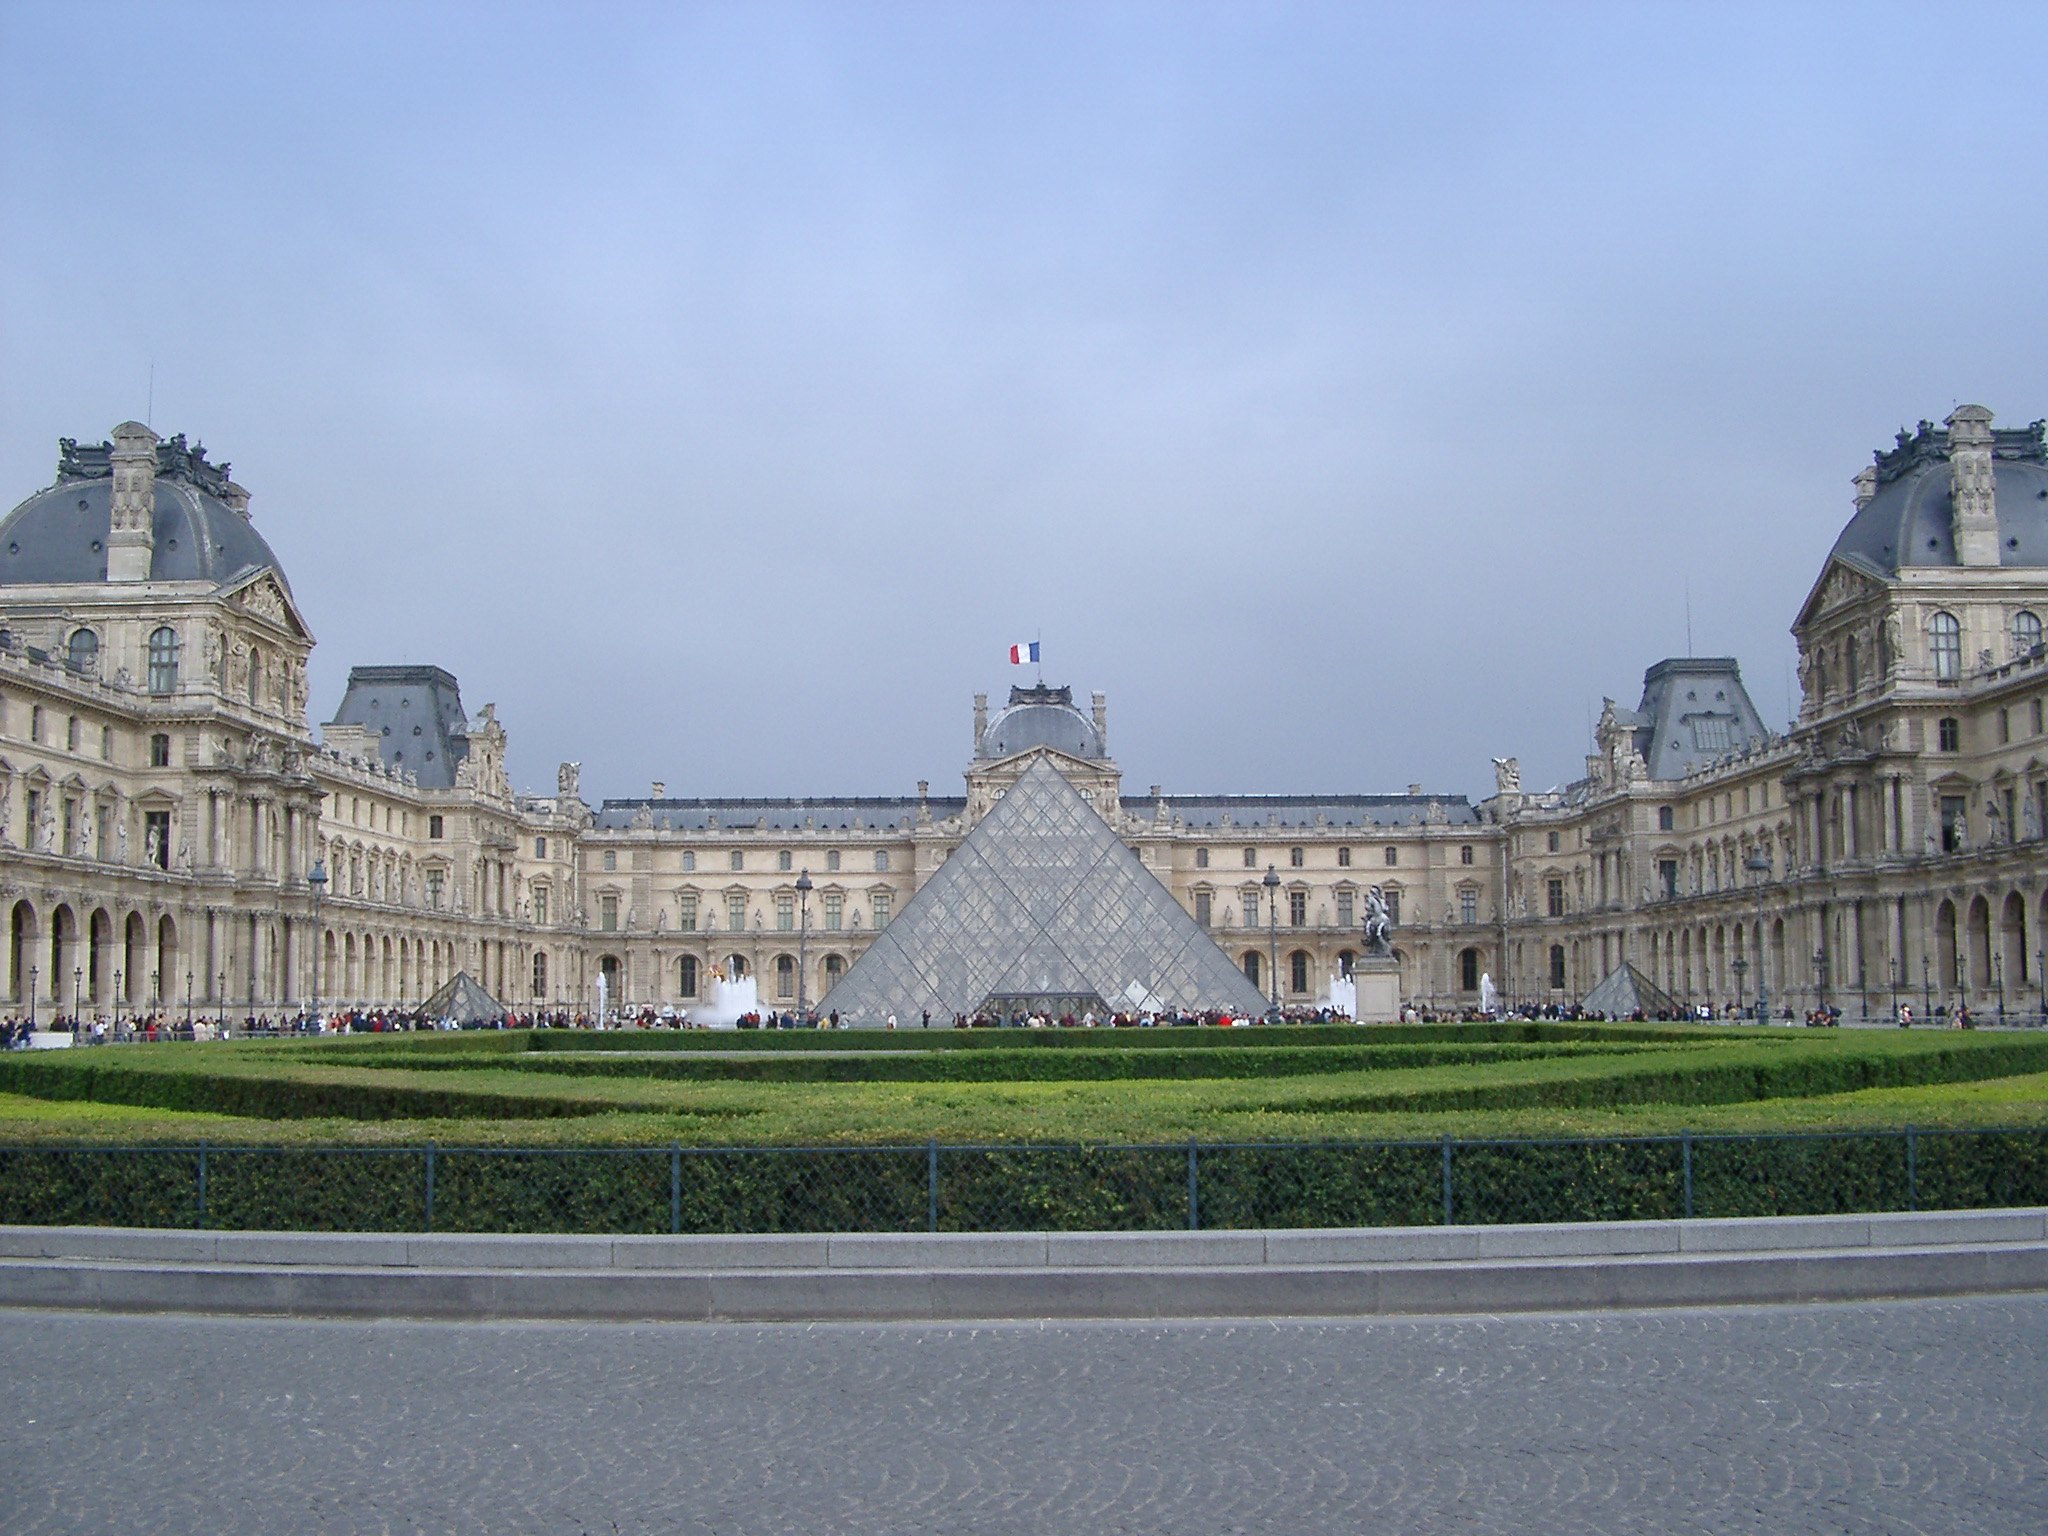 Exterior of Louvre Art Museum and Pyramide Inversee with Overcast Sky, Paris, France